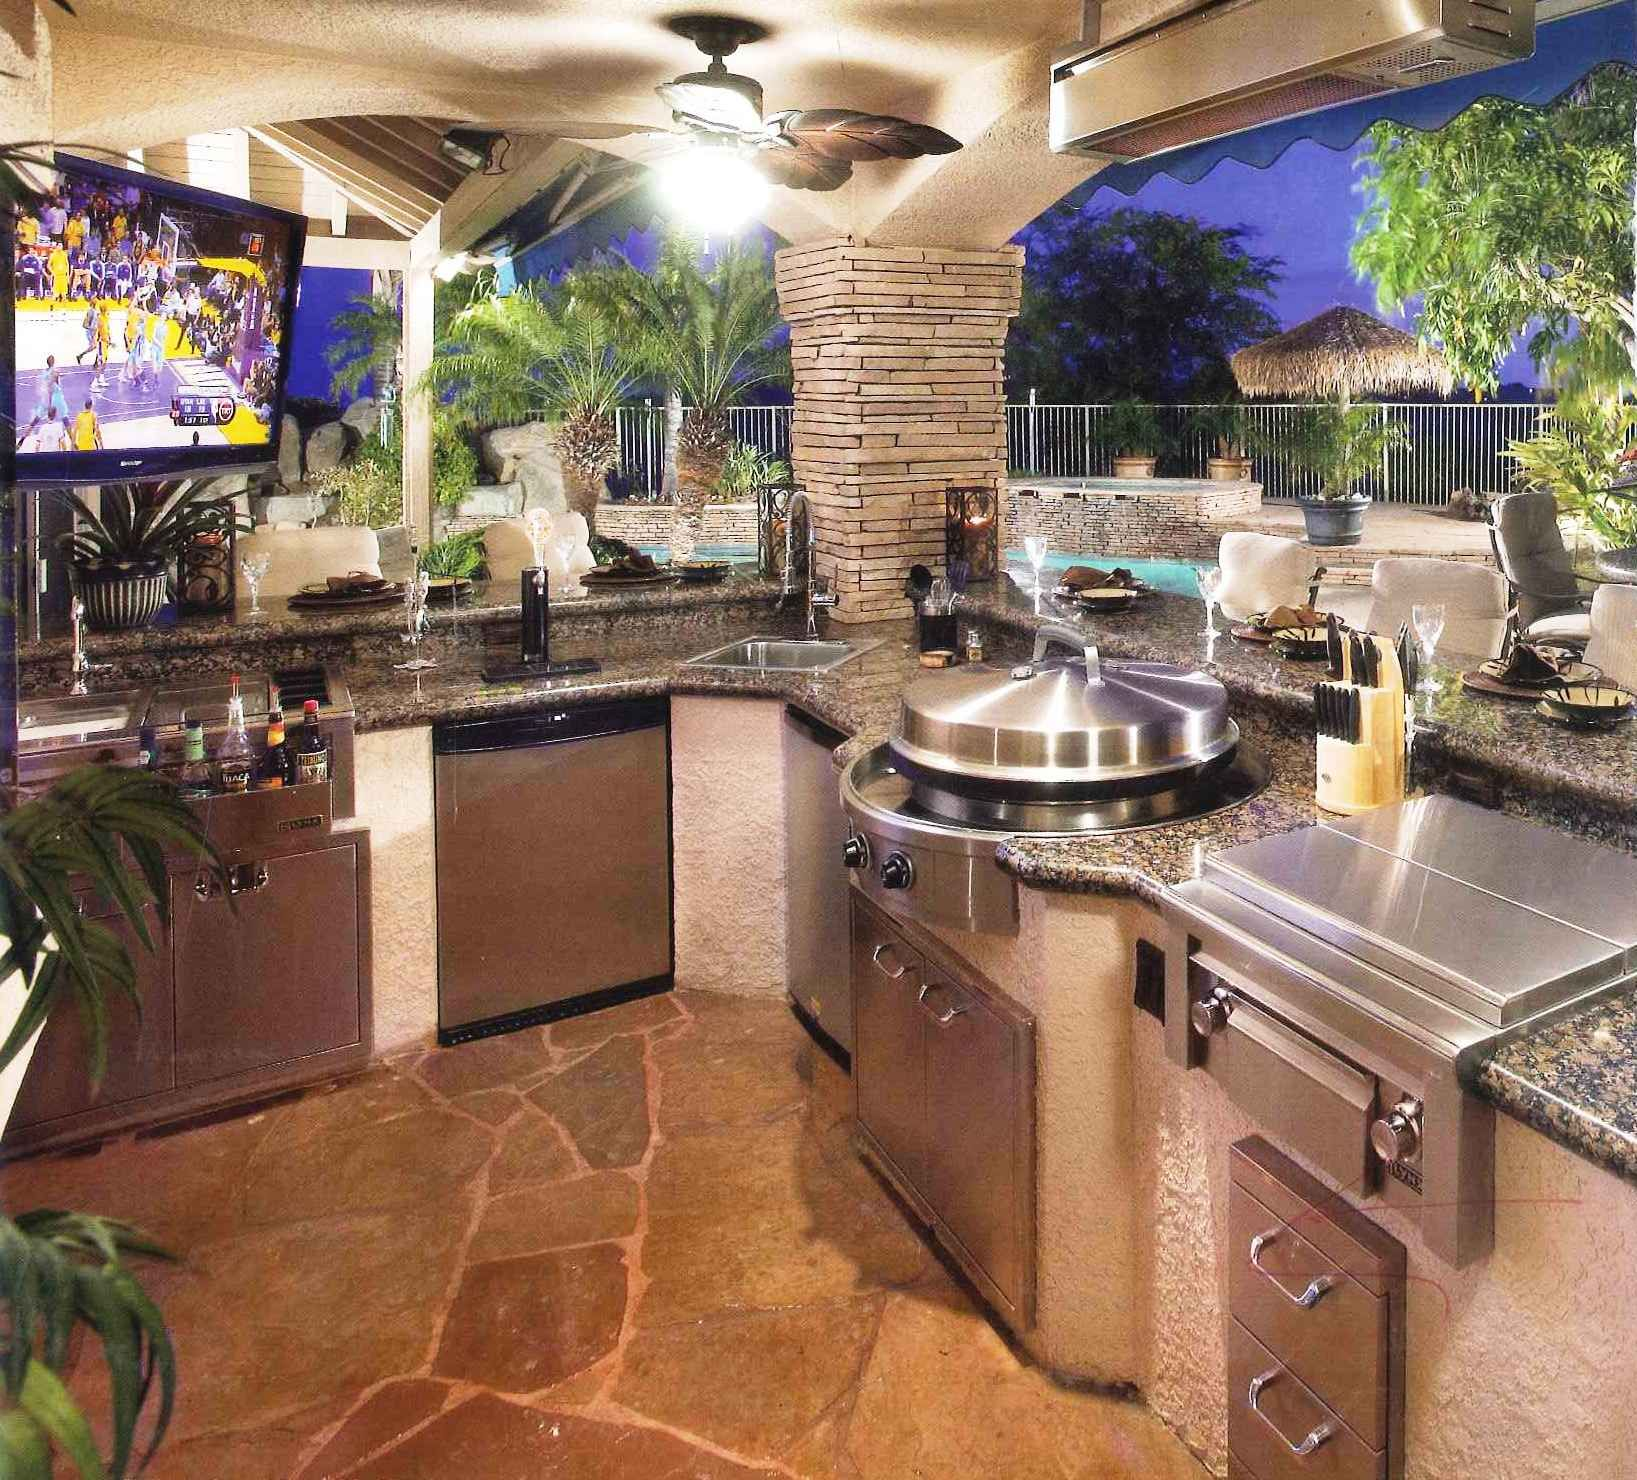 i've been to homes in hawai'i with backyard kitchens like this